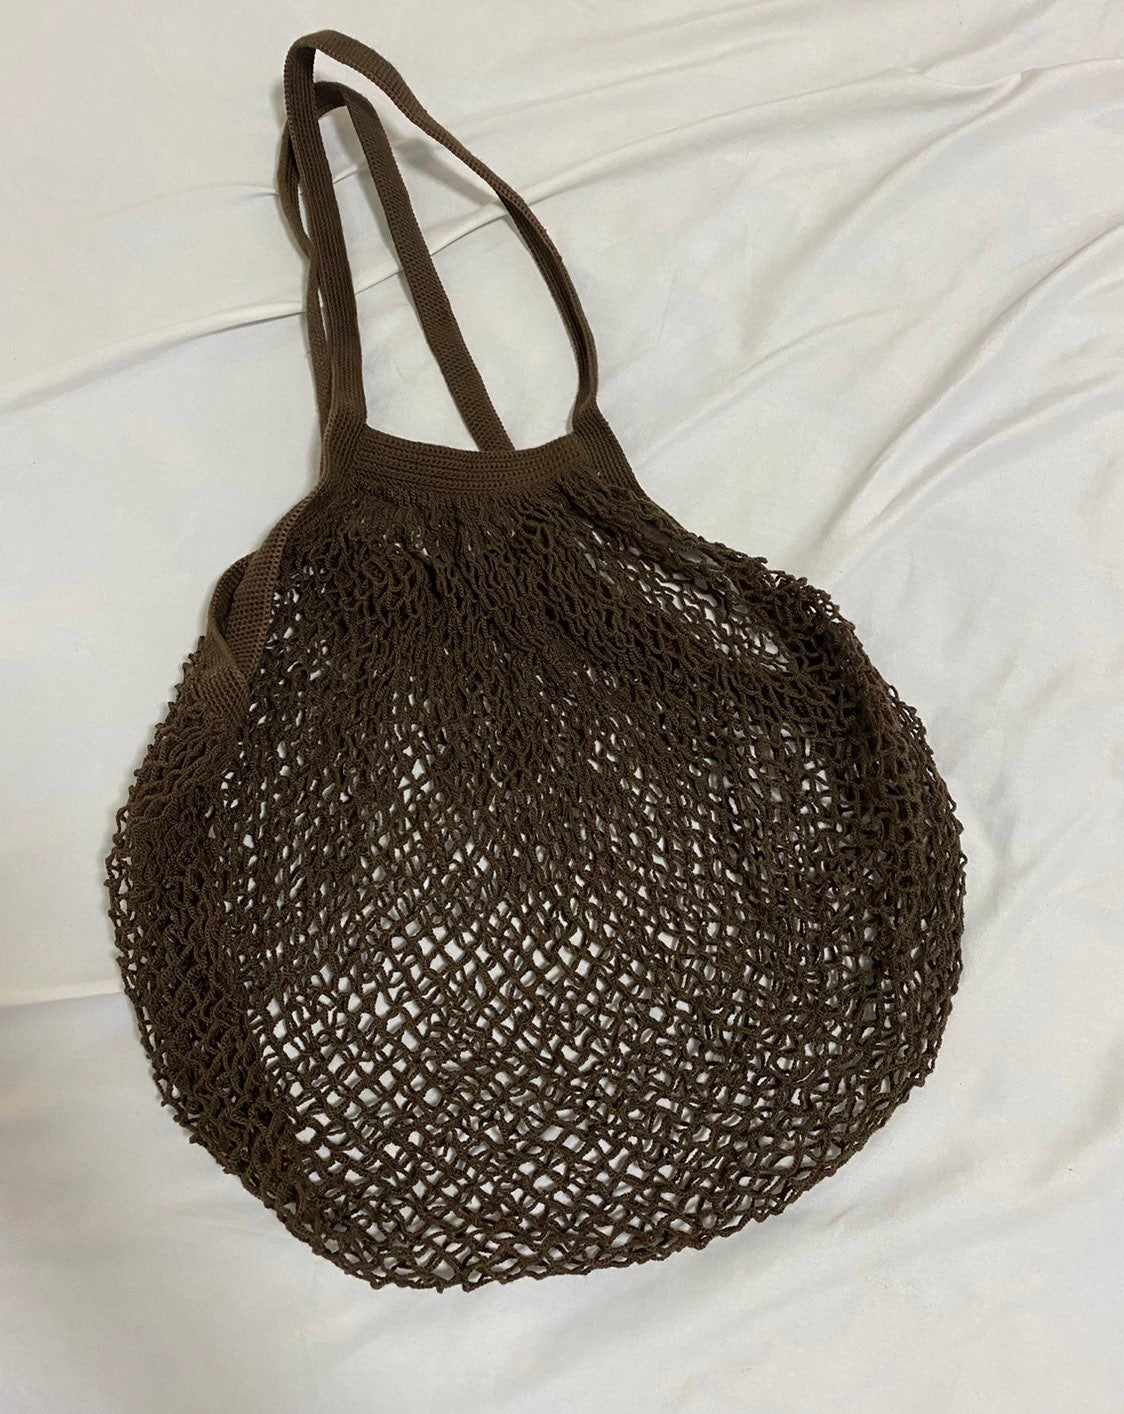 URBAN OUTFITTERS MESH GROCERY TOTE